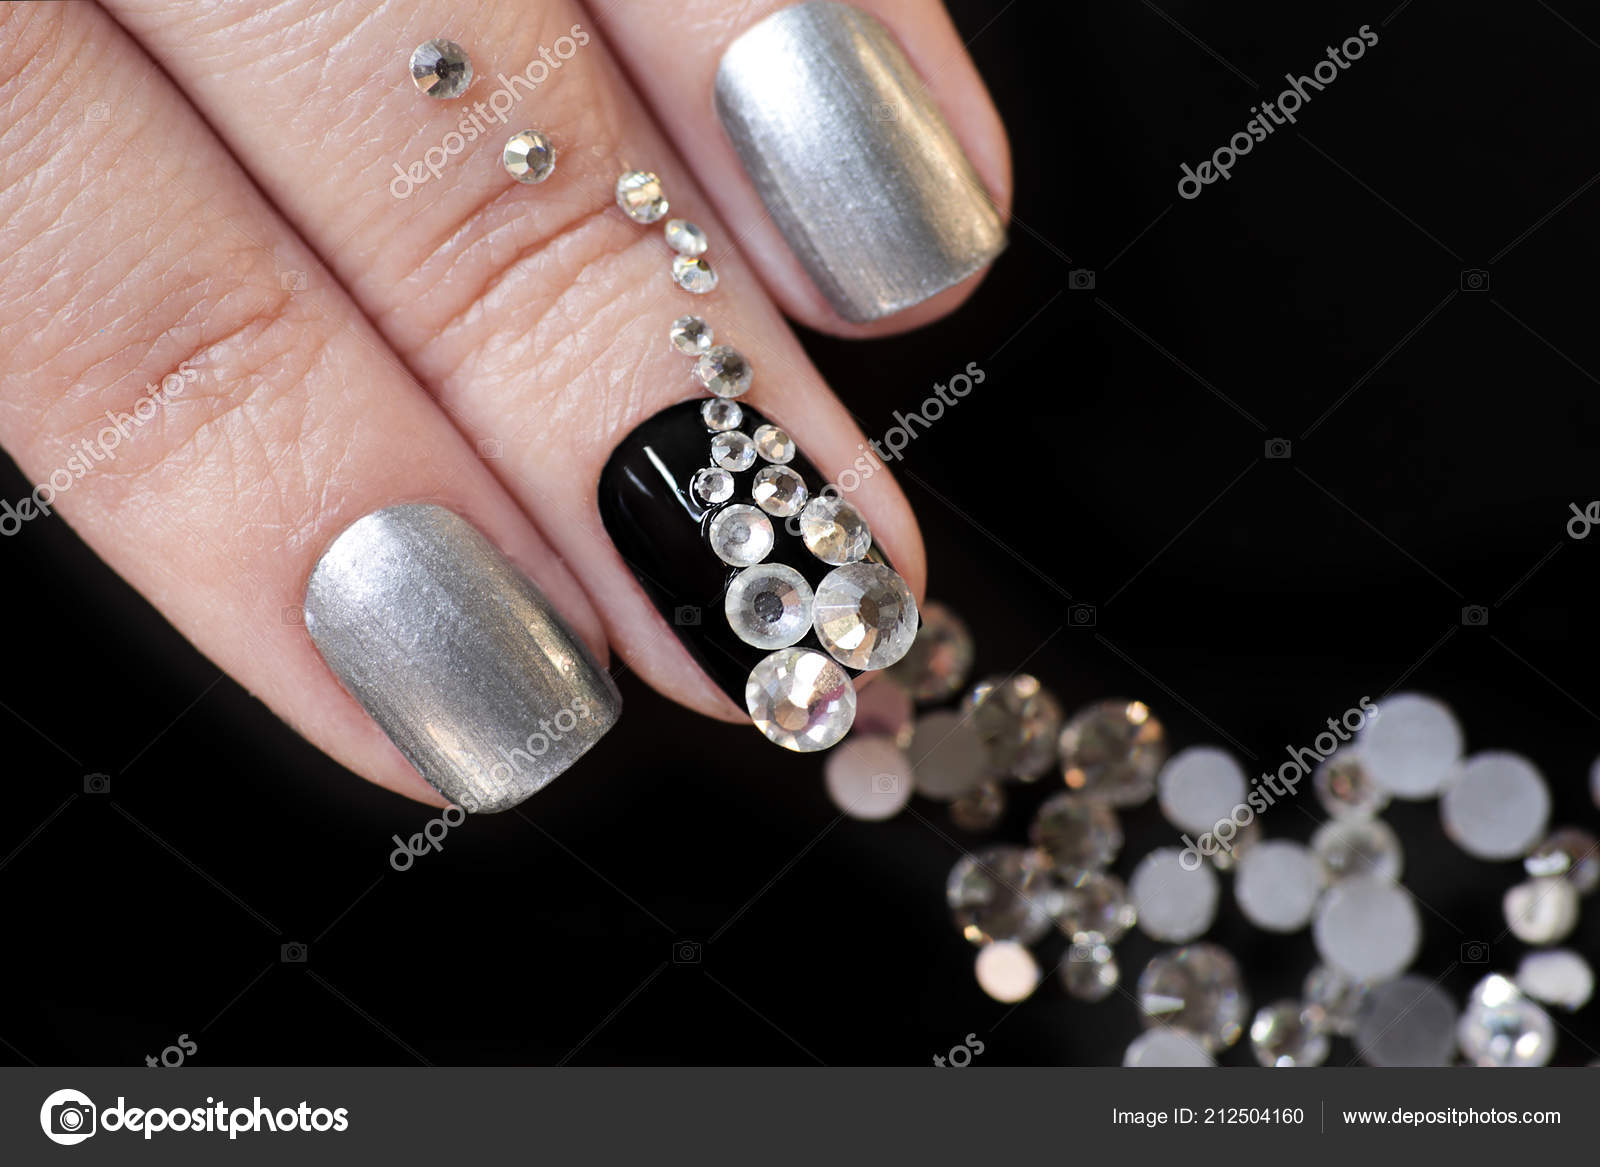 Black Silver Manicure Short Nails Design Scattering Rhinestones